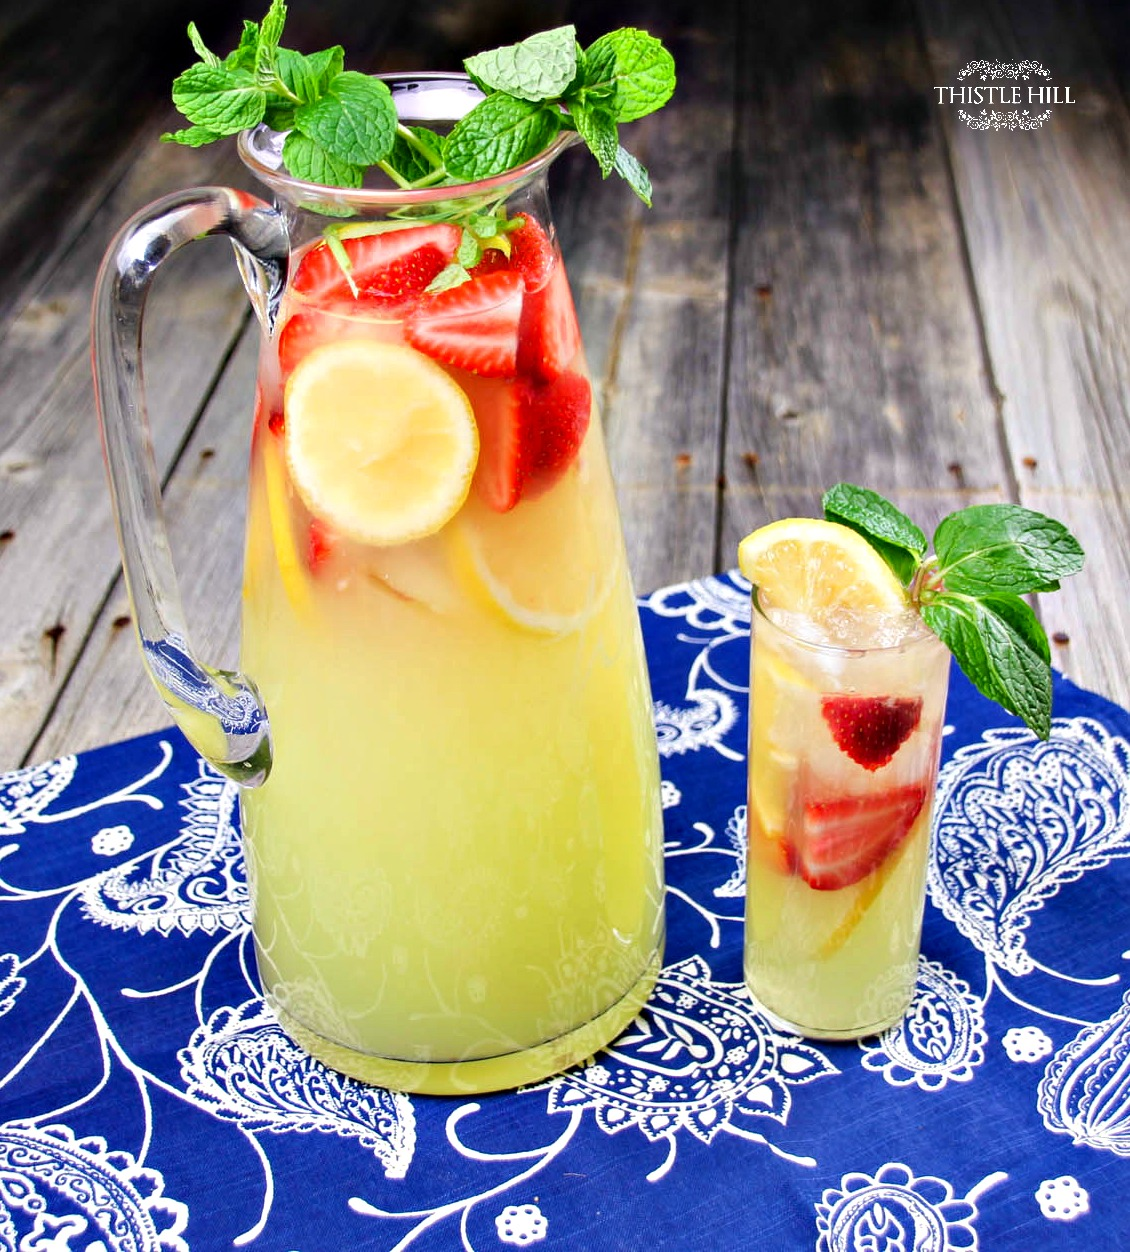 Hard Strawberry Lemonade Punch Cocktail Recipe - Thistle Hill